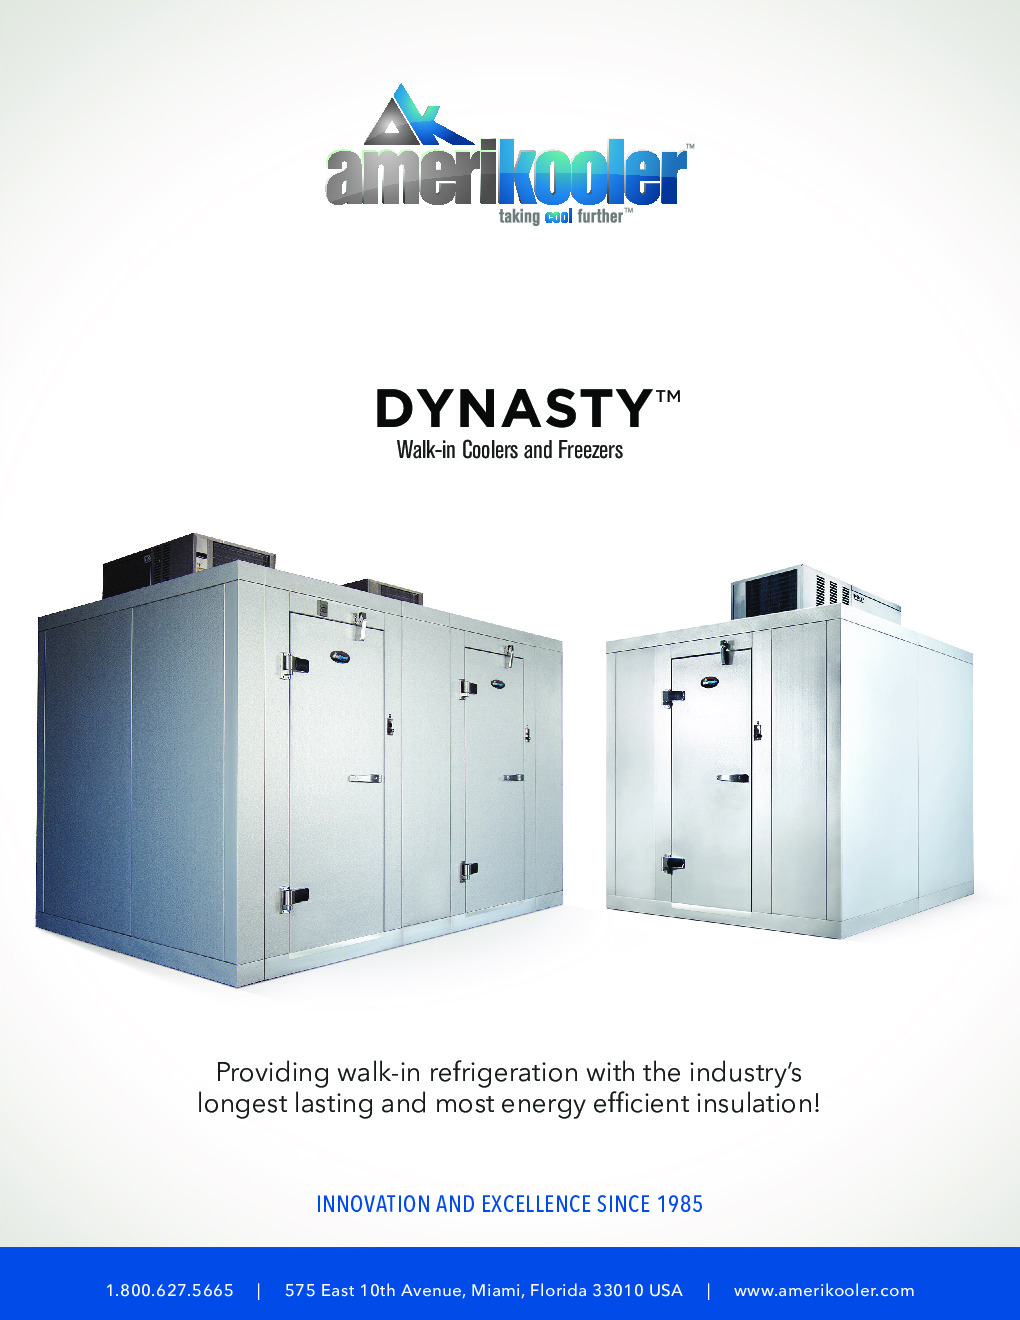 AmeriKooler DW101577F-6/9-SC 10' X 15' Walk-In Cooler, 9' L Cooler with Floor and 6' L Freezer, Self Contained